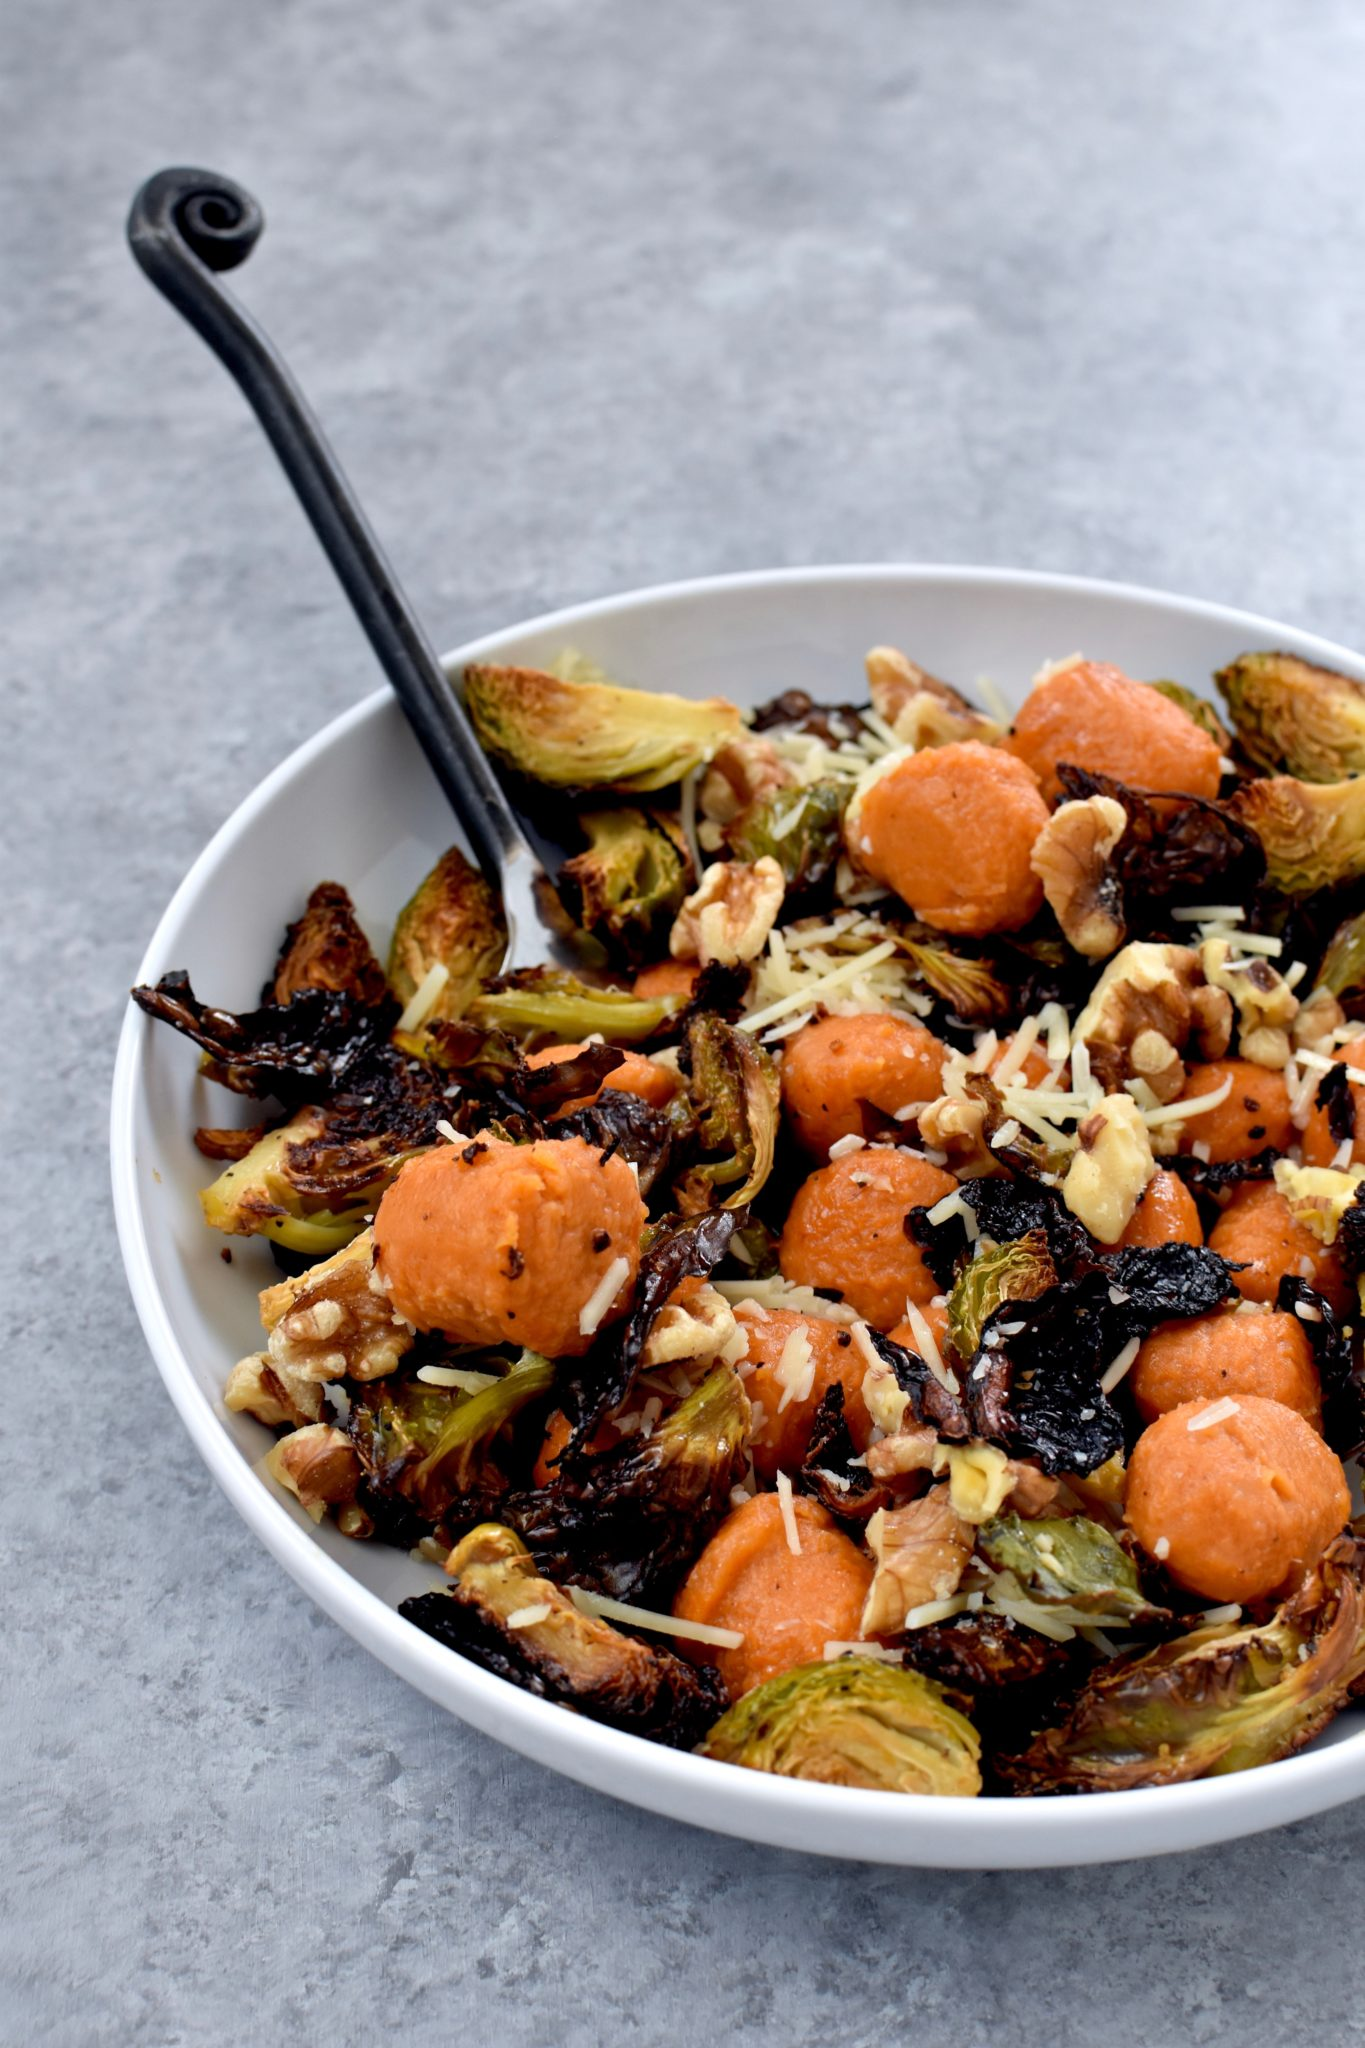 sweet potato gnocchi with roasted brussel sprouts, dried cranberries, walnuts & parmesan // cait's plate